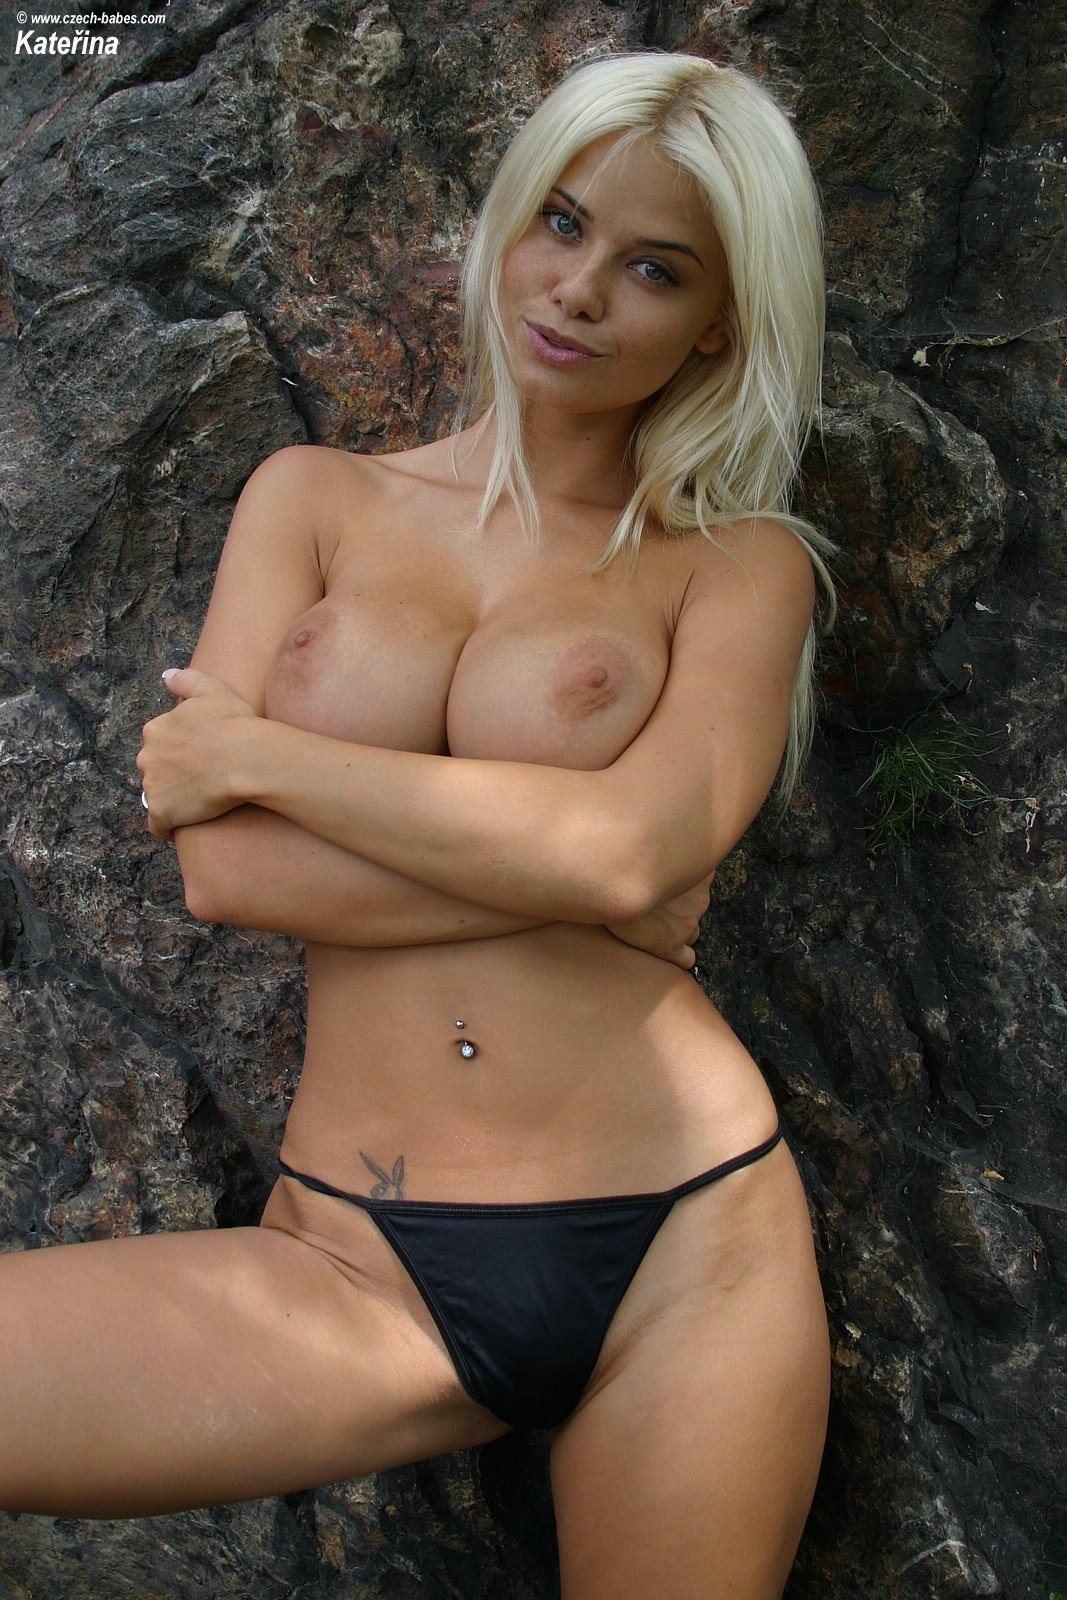 katerina-blonde-boobs-flip-flops-outdoor-naked-13